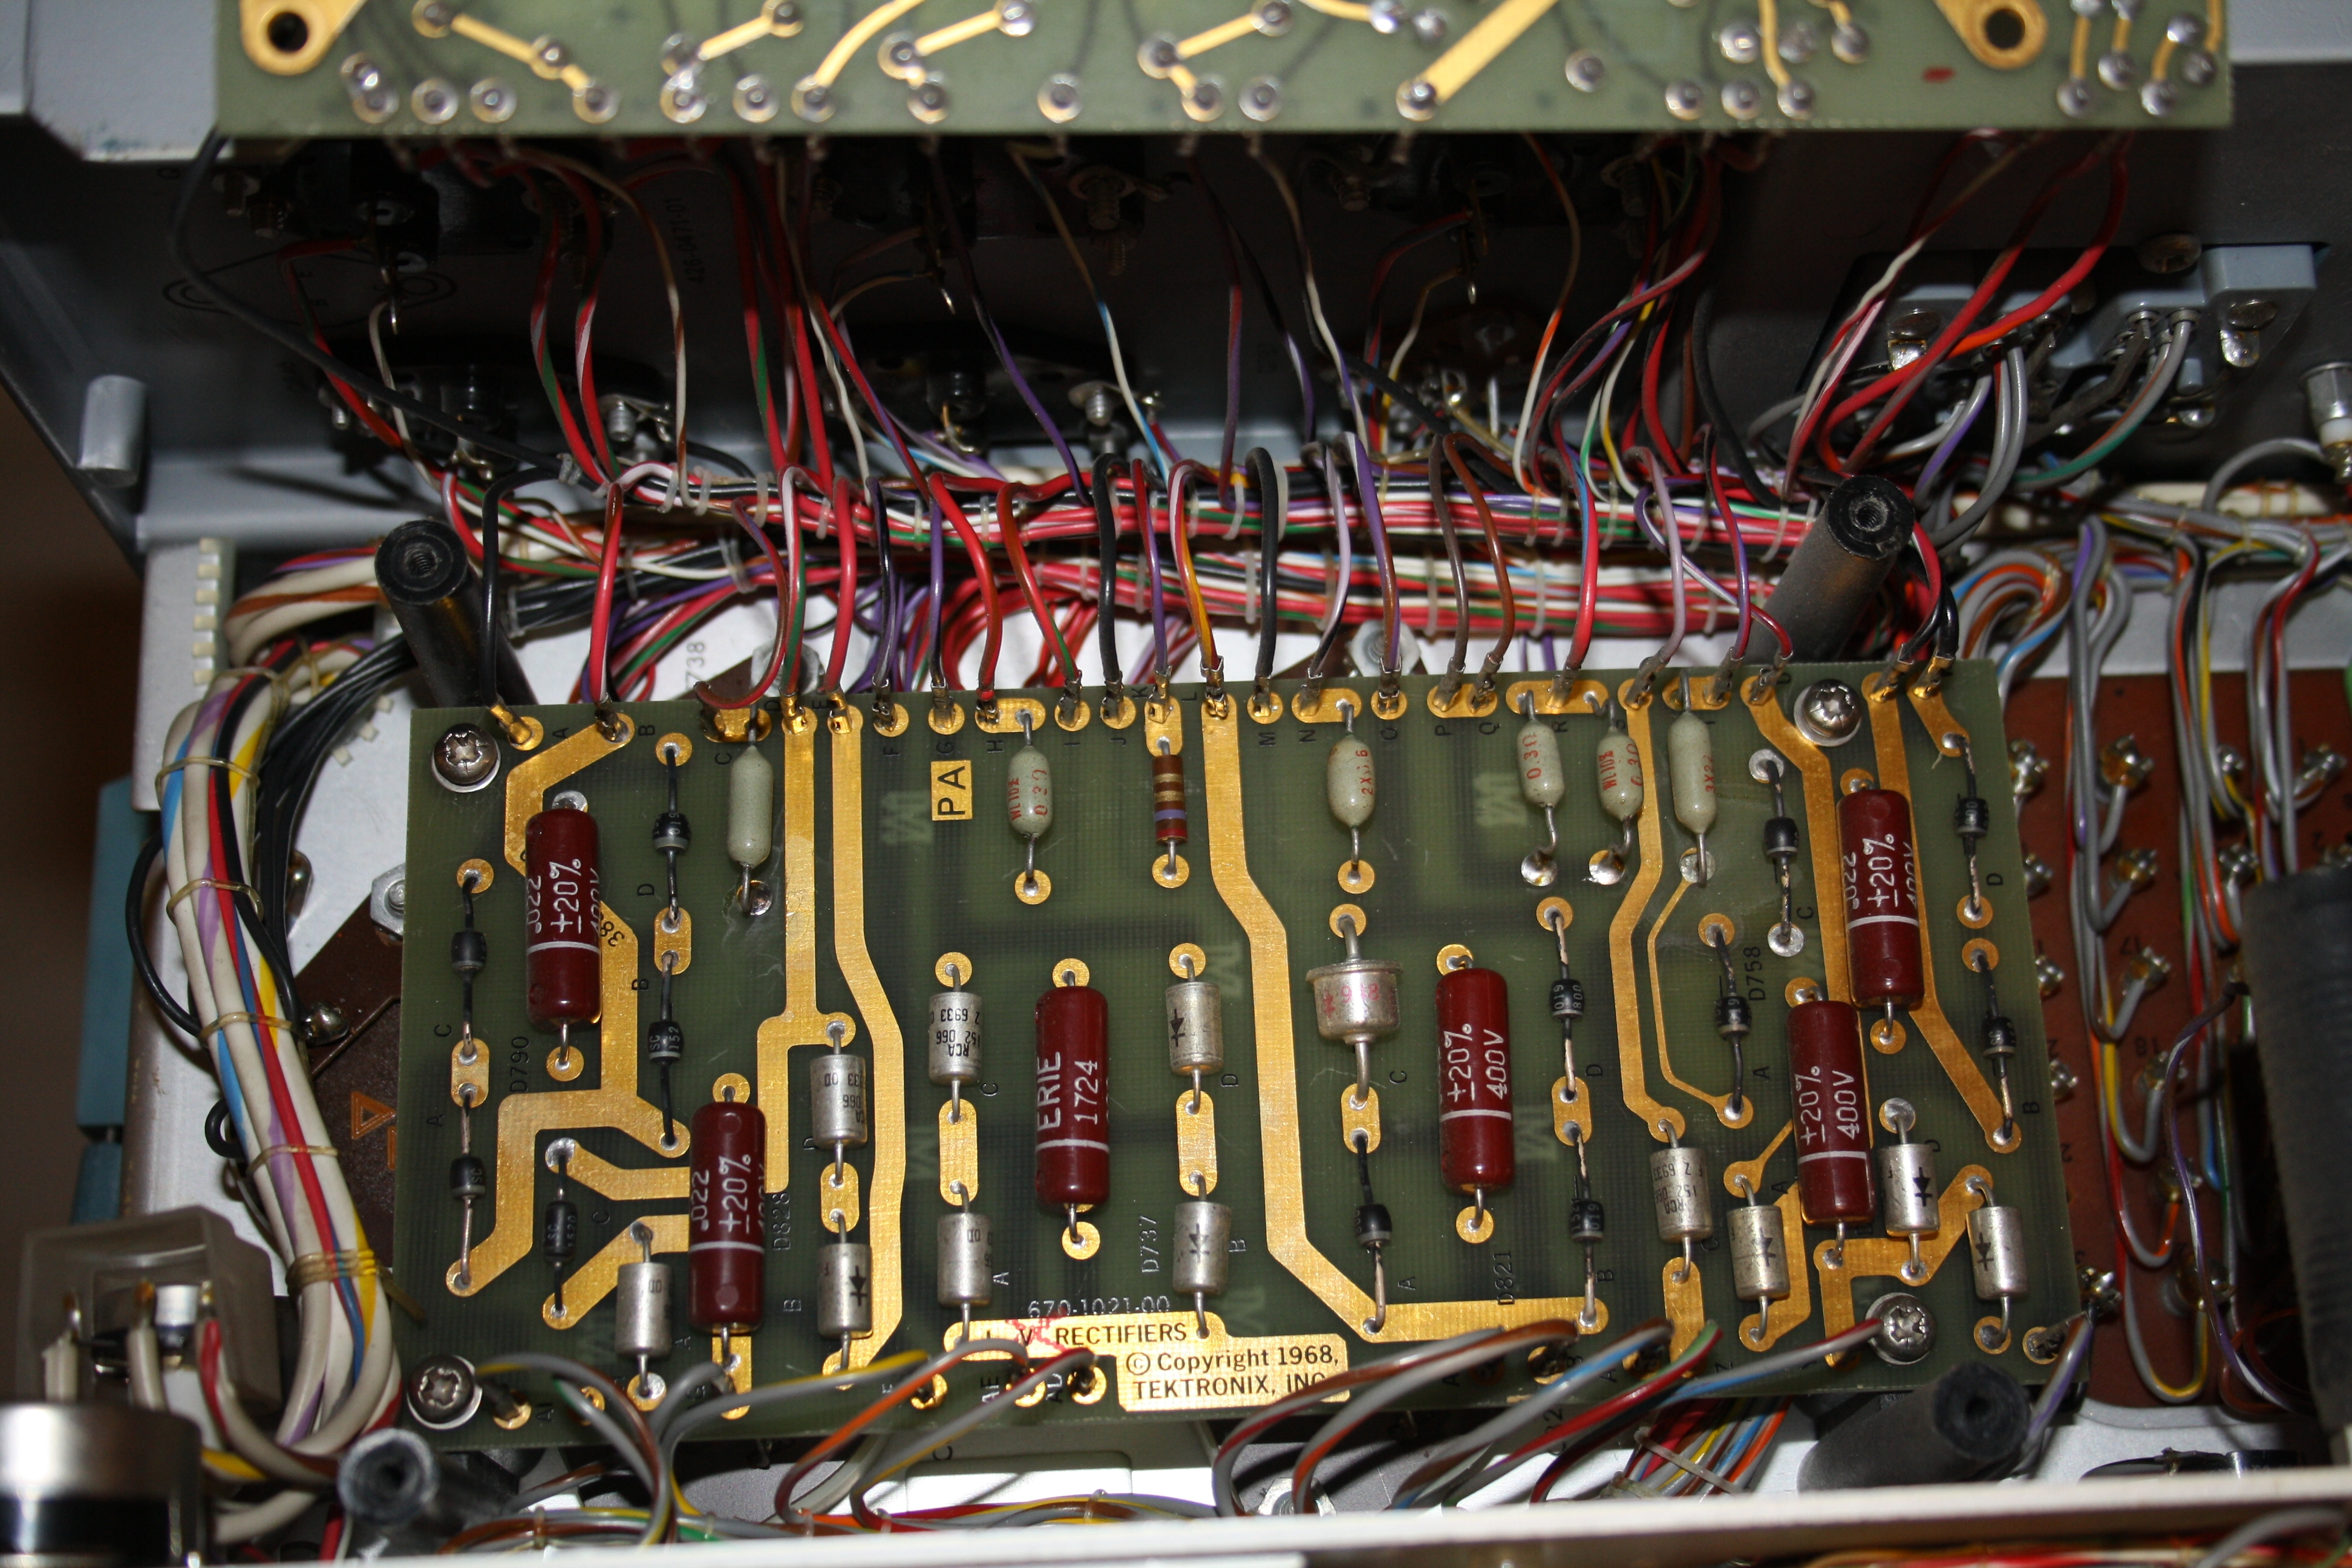 The Big Tektronix 576 Curve Tracer Page Diode Tester Circuit Rectifier Board C759 Is Underneath All Diodes Give In 680mv With My Esr Look At That Gold It Must Have Been Cheap 1986